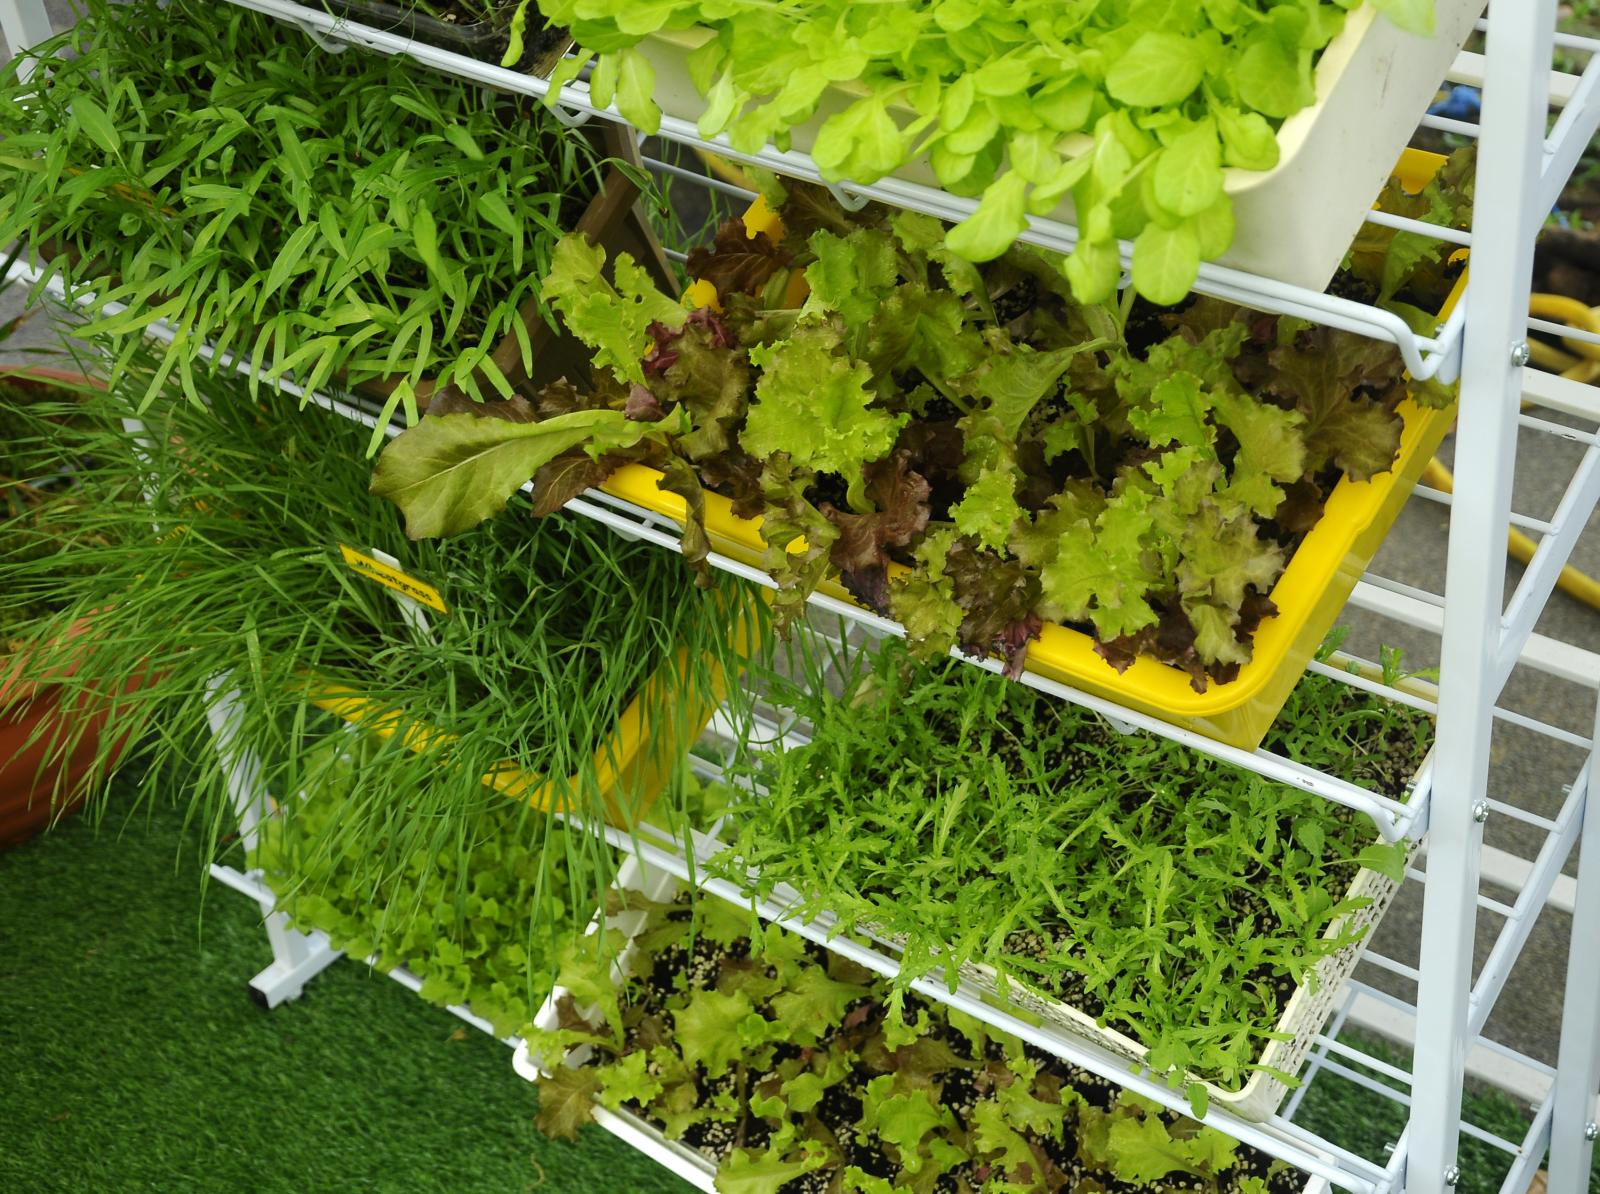 Stacking planting containers to maximise space